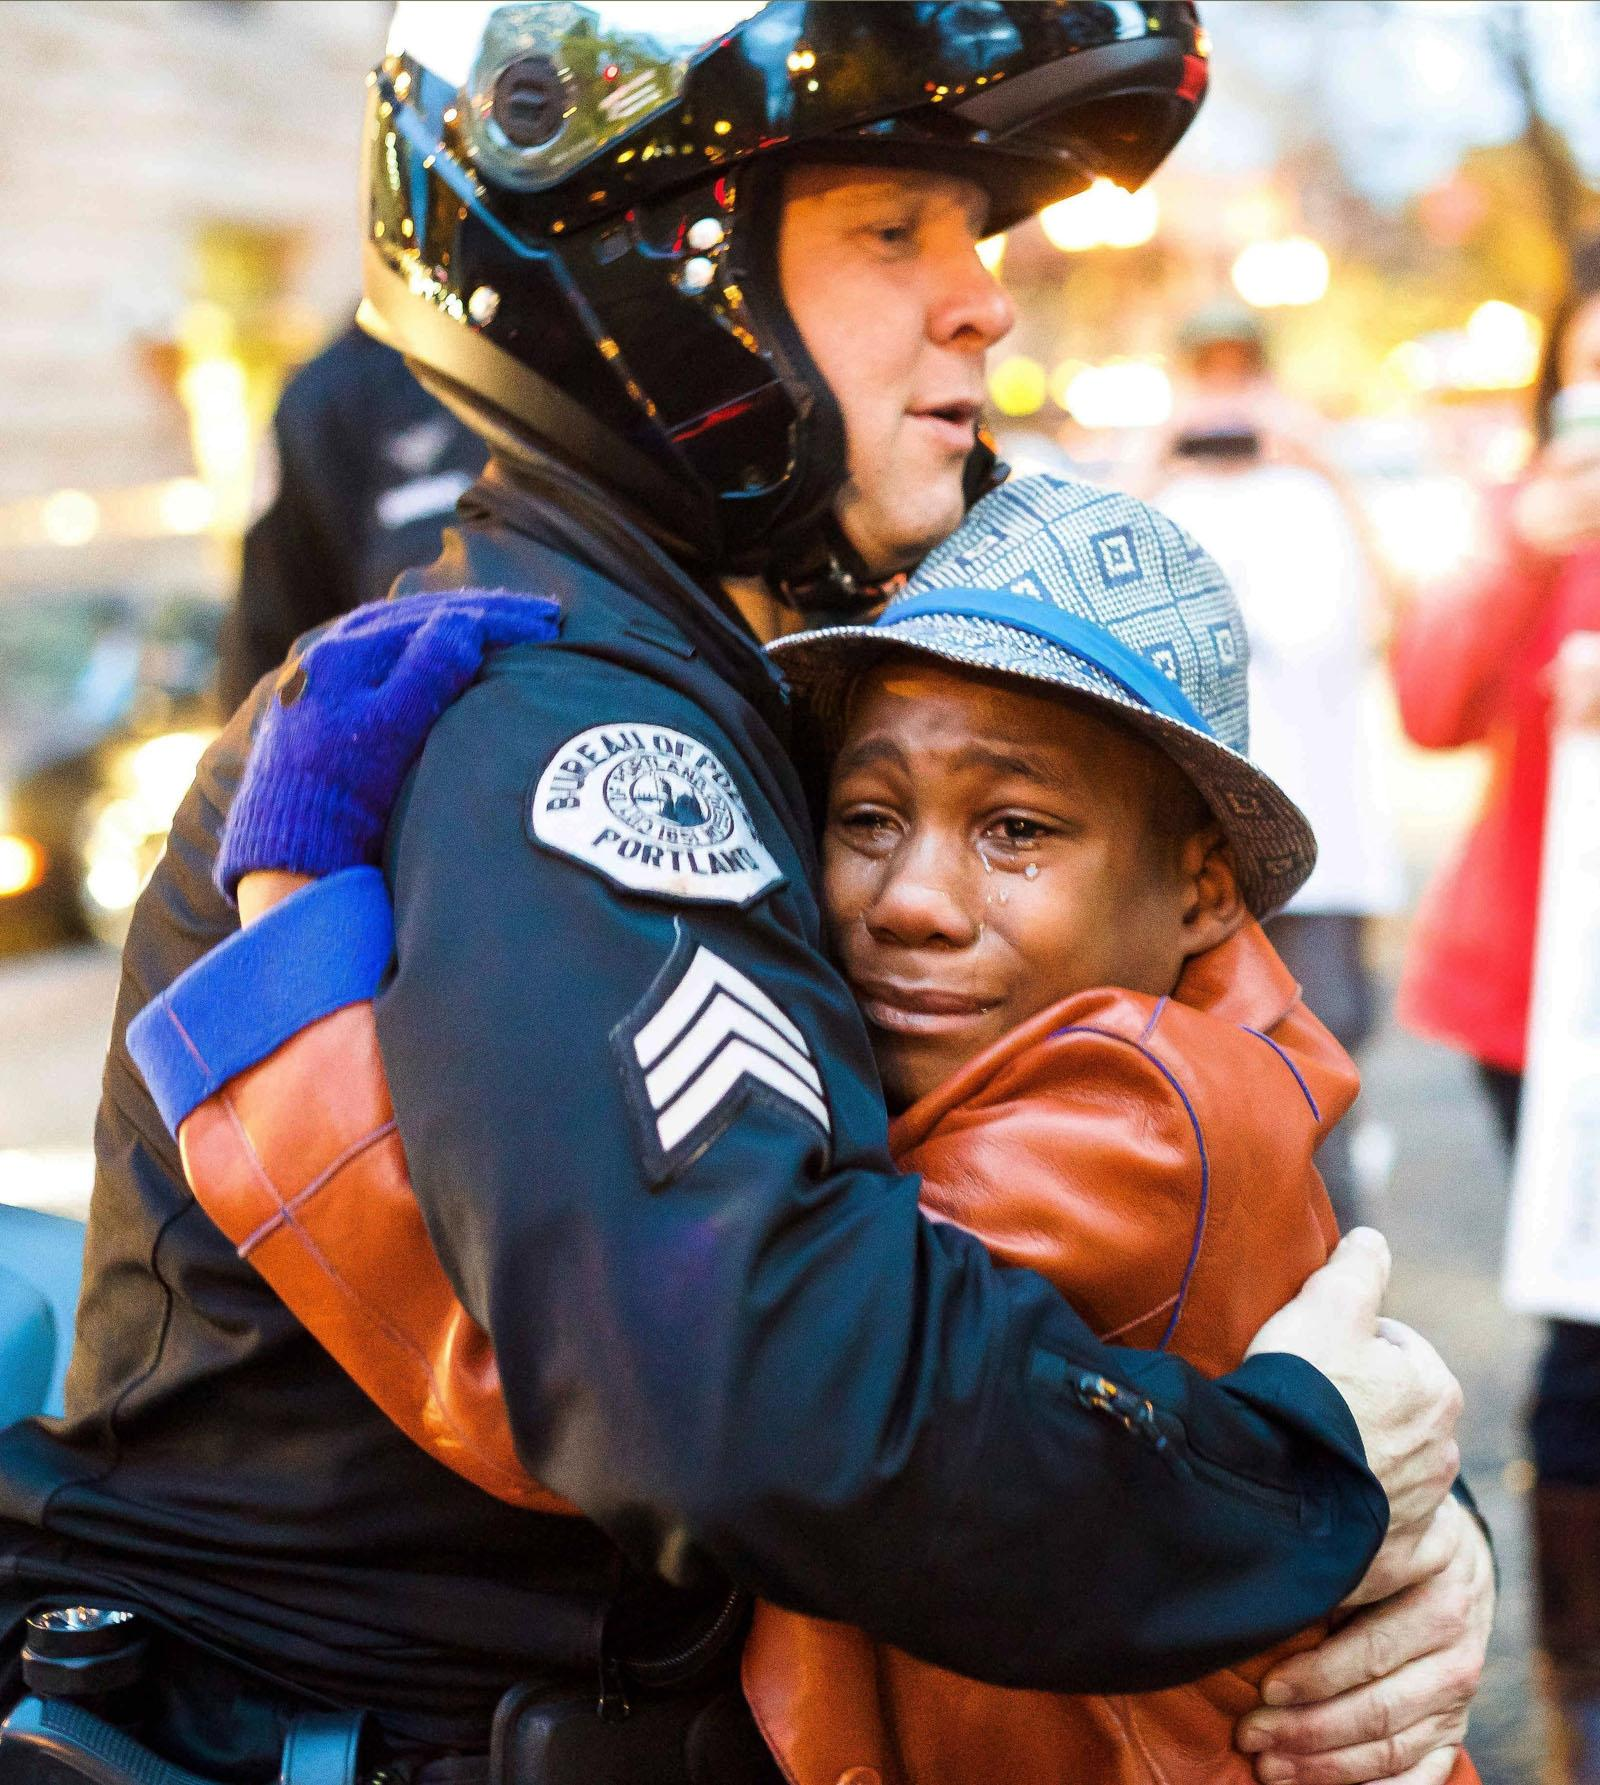 Portland police Sgt. Bret Barnum, left, and Devonte Hart, 12, hug at a rally Tuesday in Portland where people had gathered in support of the protests in Ferguson, Mo. AP Photo / Johnny Huu Nguyen